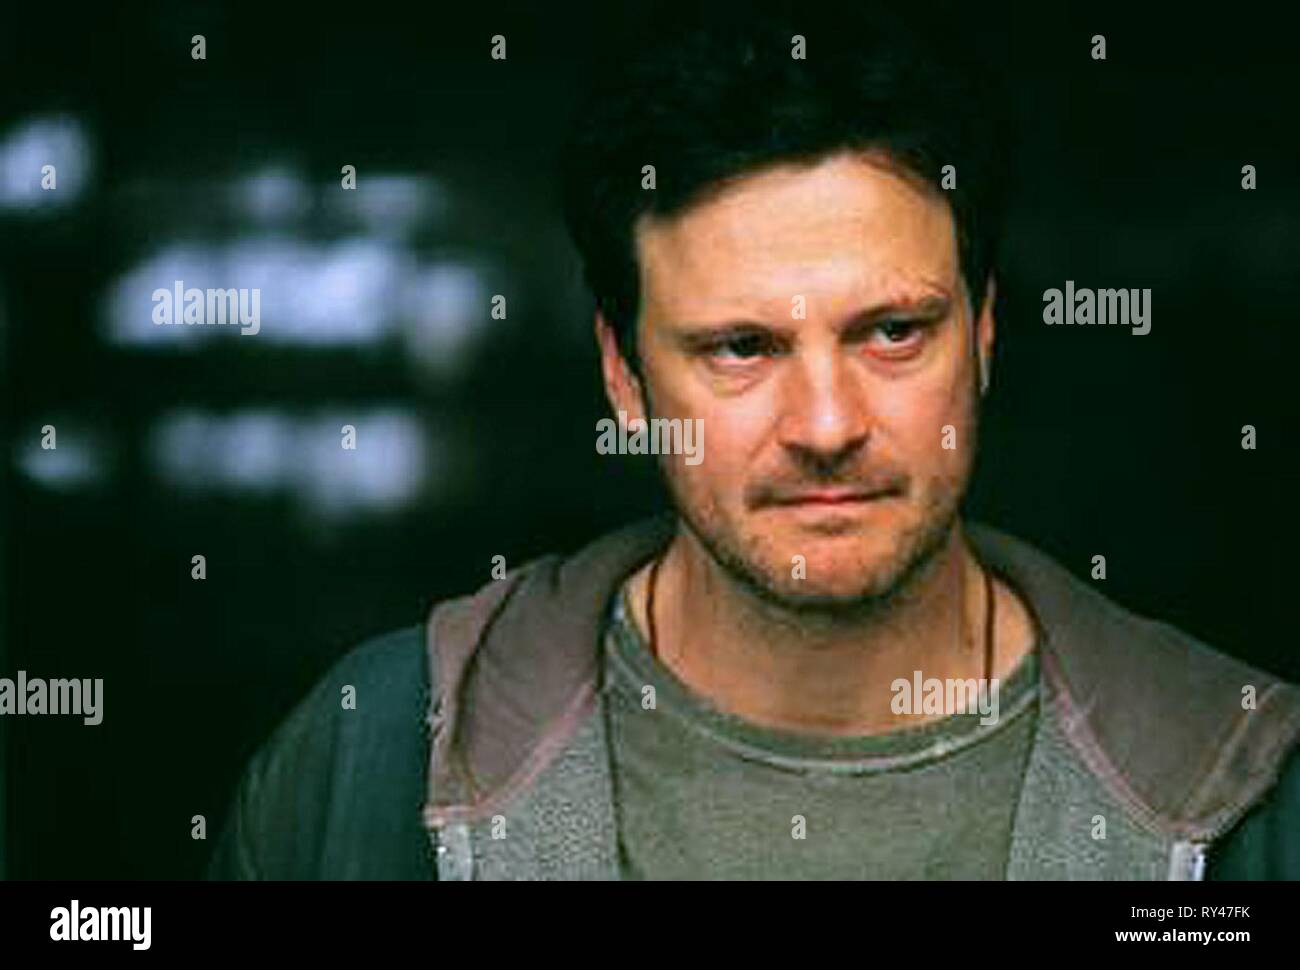 COLIN FIRTH, Trauma, 2004 Stockbild